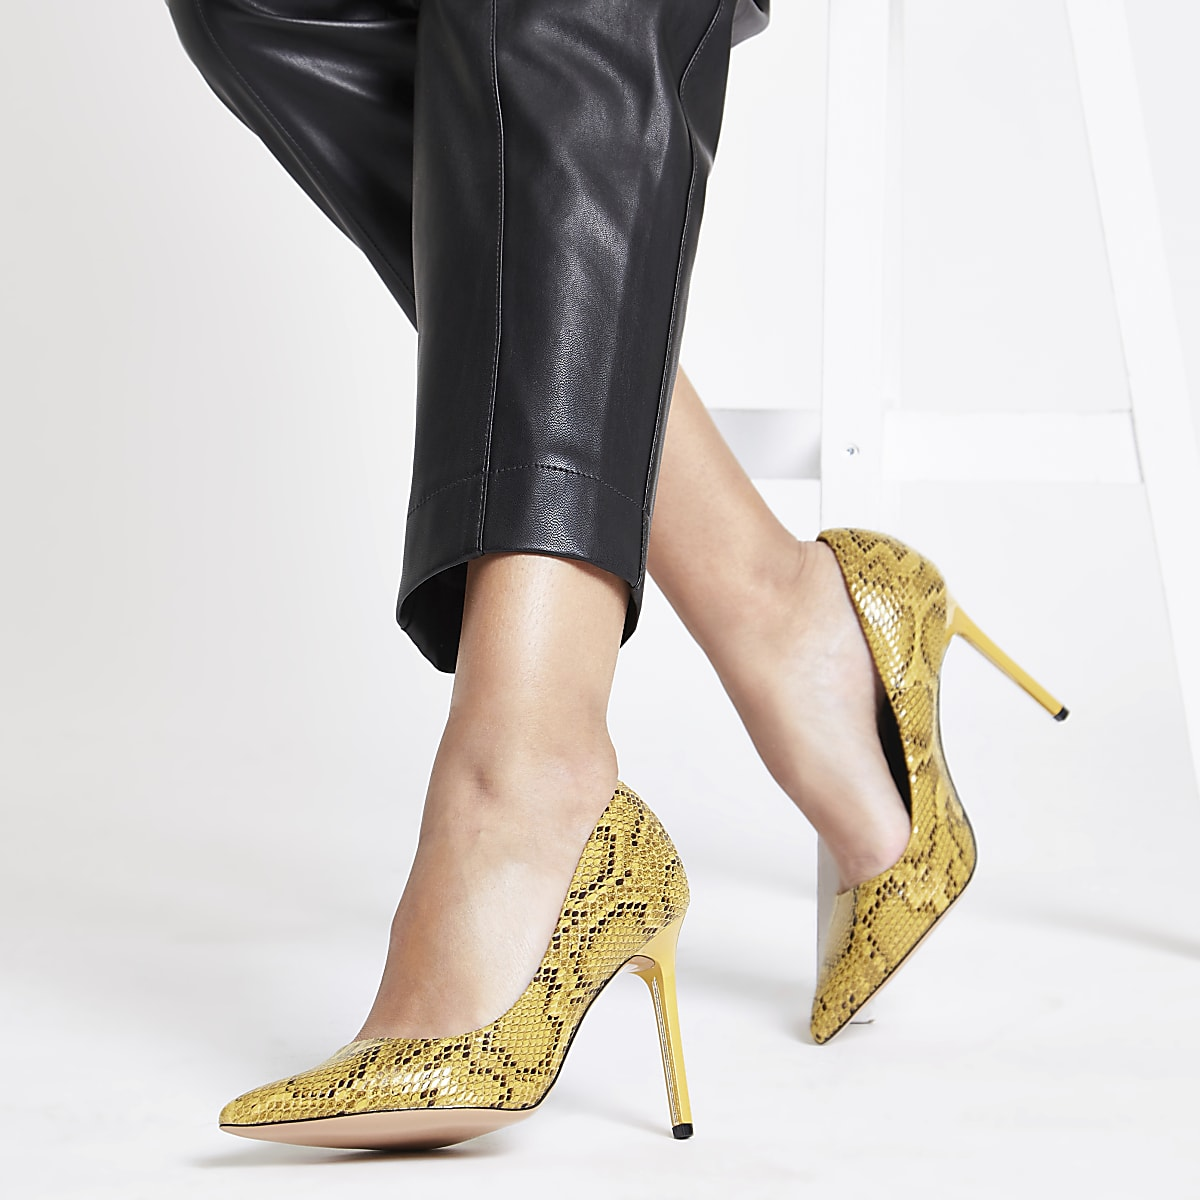 ccfd4198254 Yellow snake print court shoes